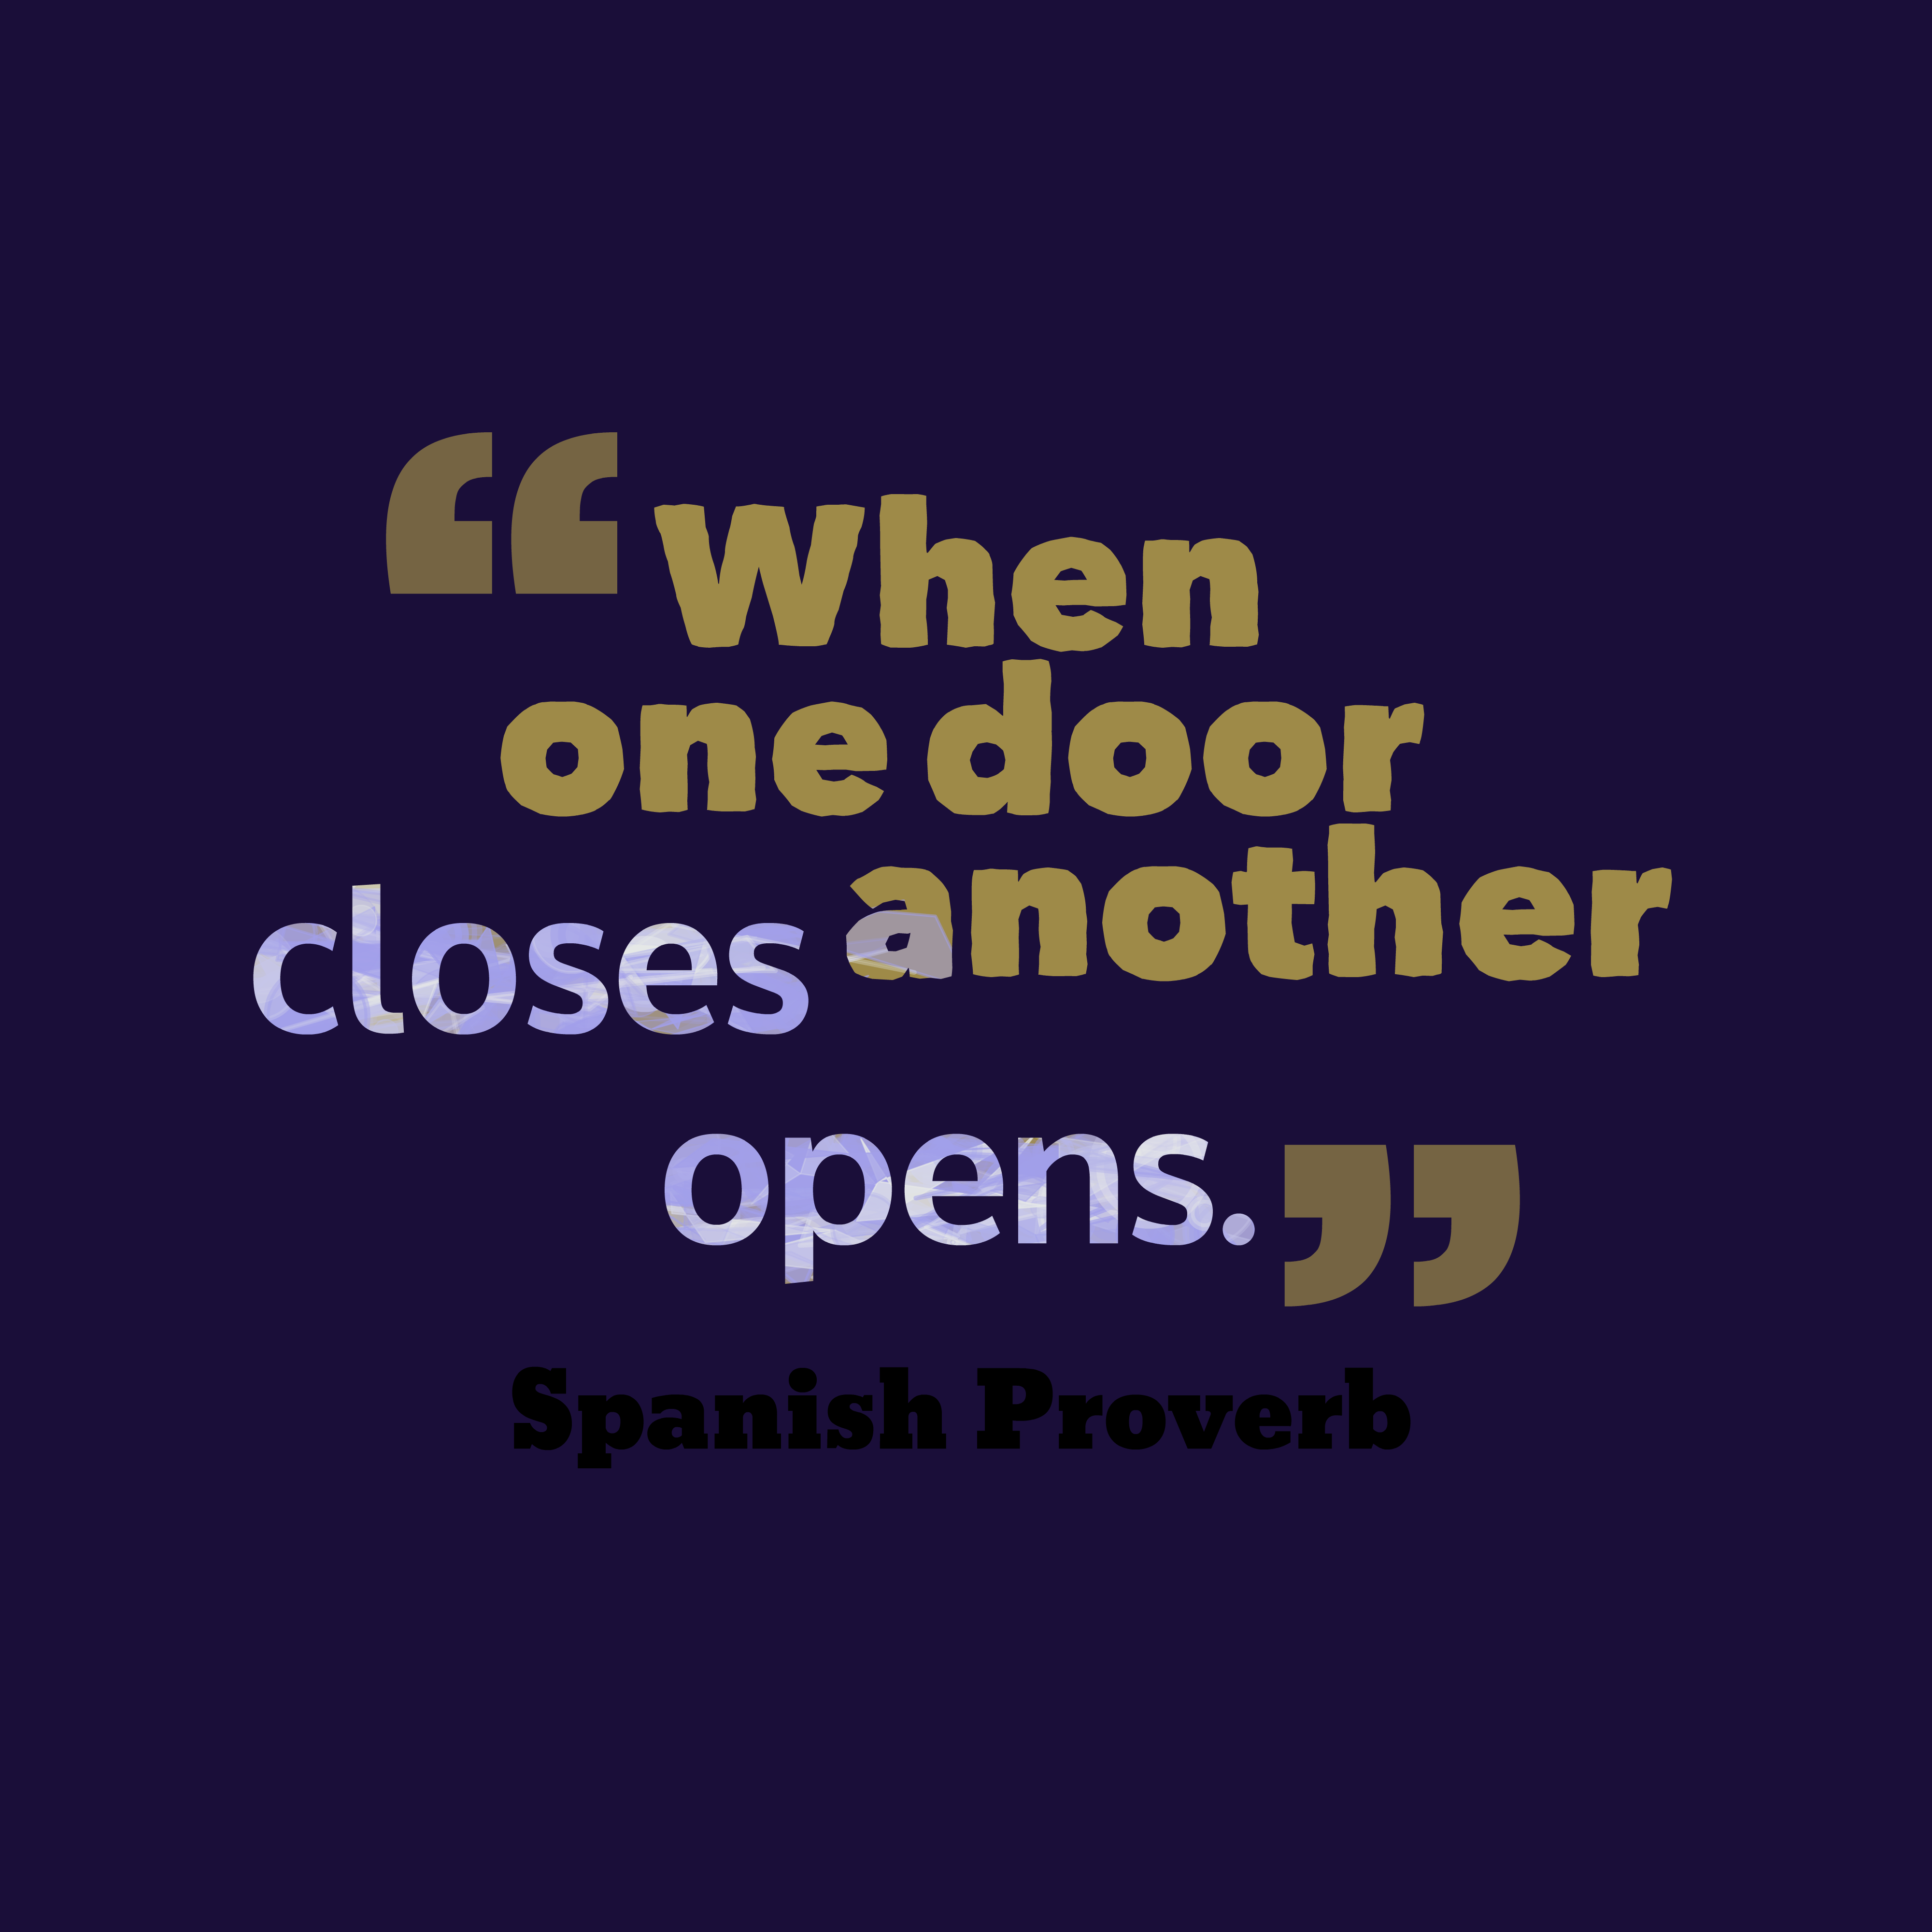 Download High Resolution Quotes Picture Maker From Spanish